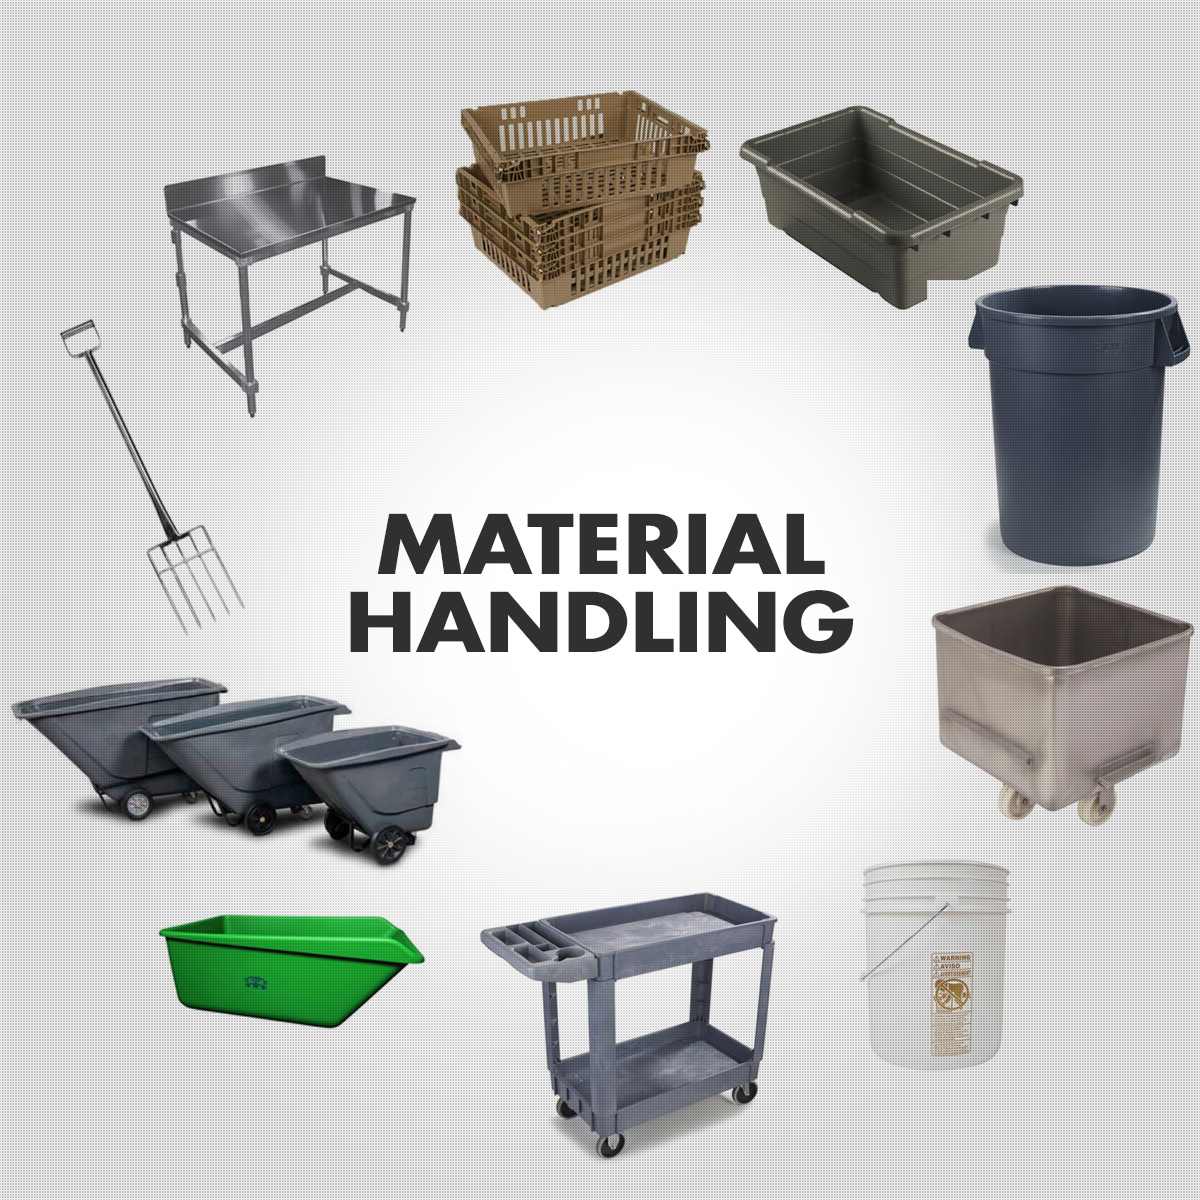 Material Handling - Commercial Totes, Trays, Carts, Buggies, Tables